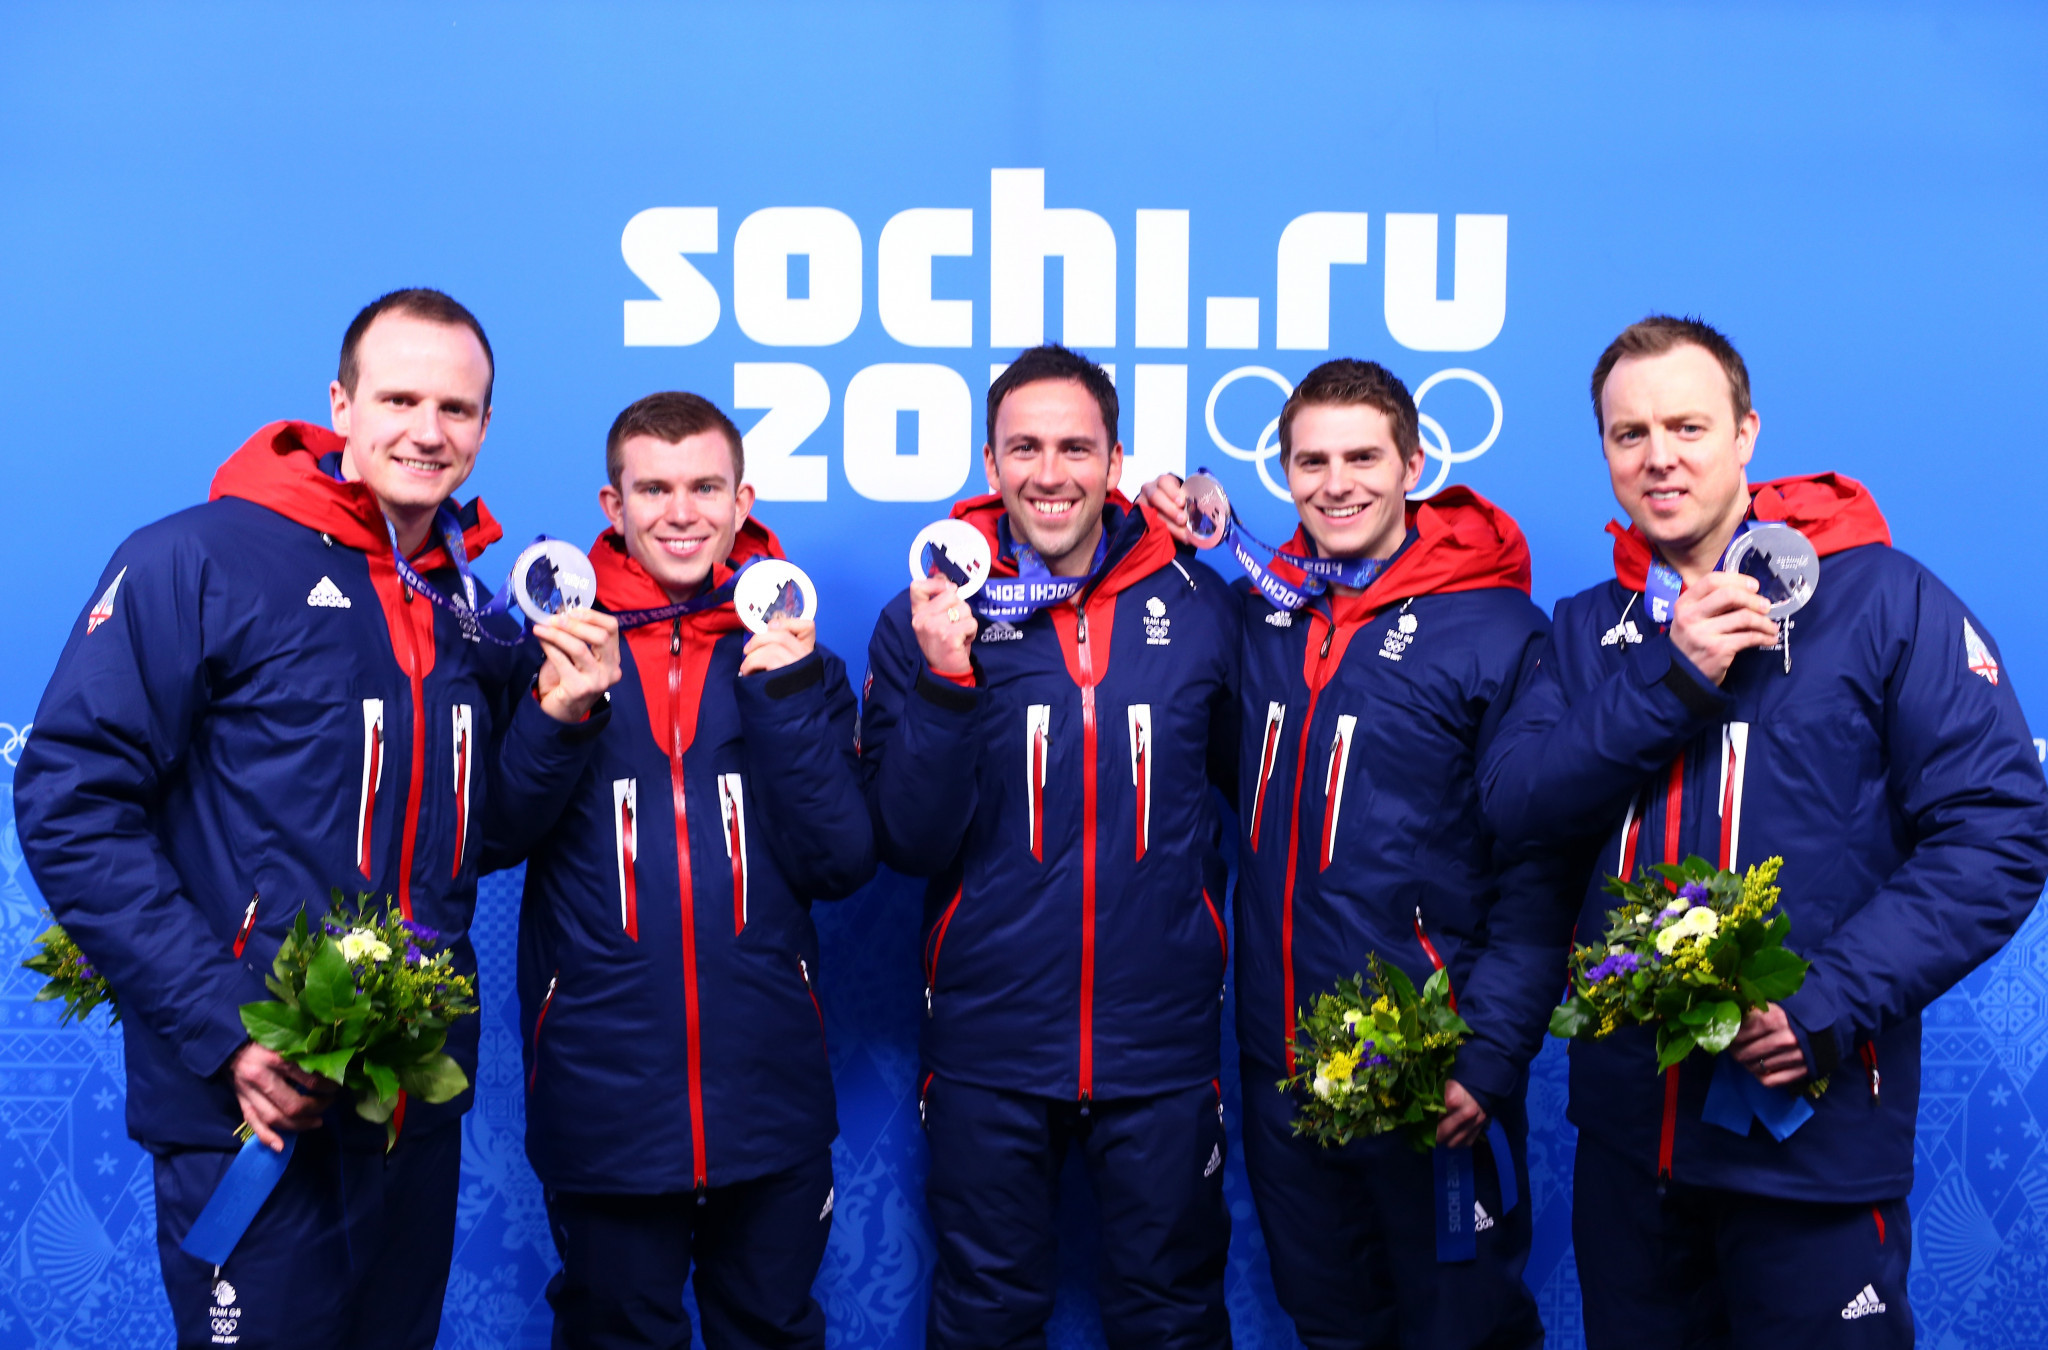 David Murdoch, centre, led his team to silver at the Sochi 2014 Winter Olympics ©Getty Images